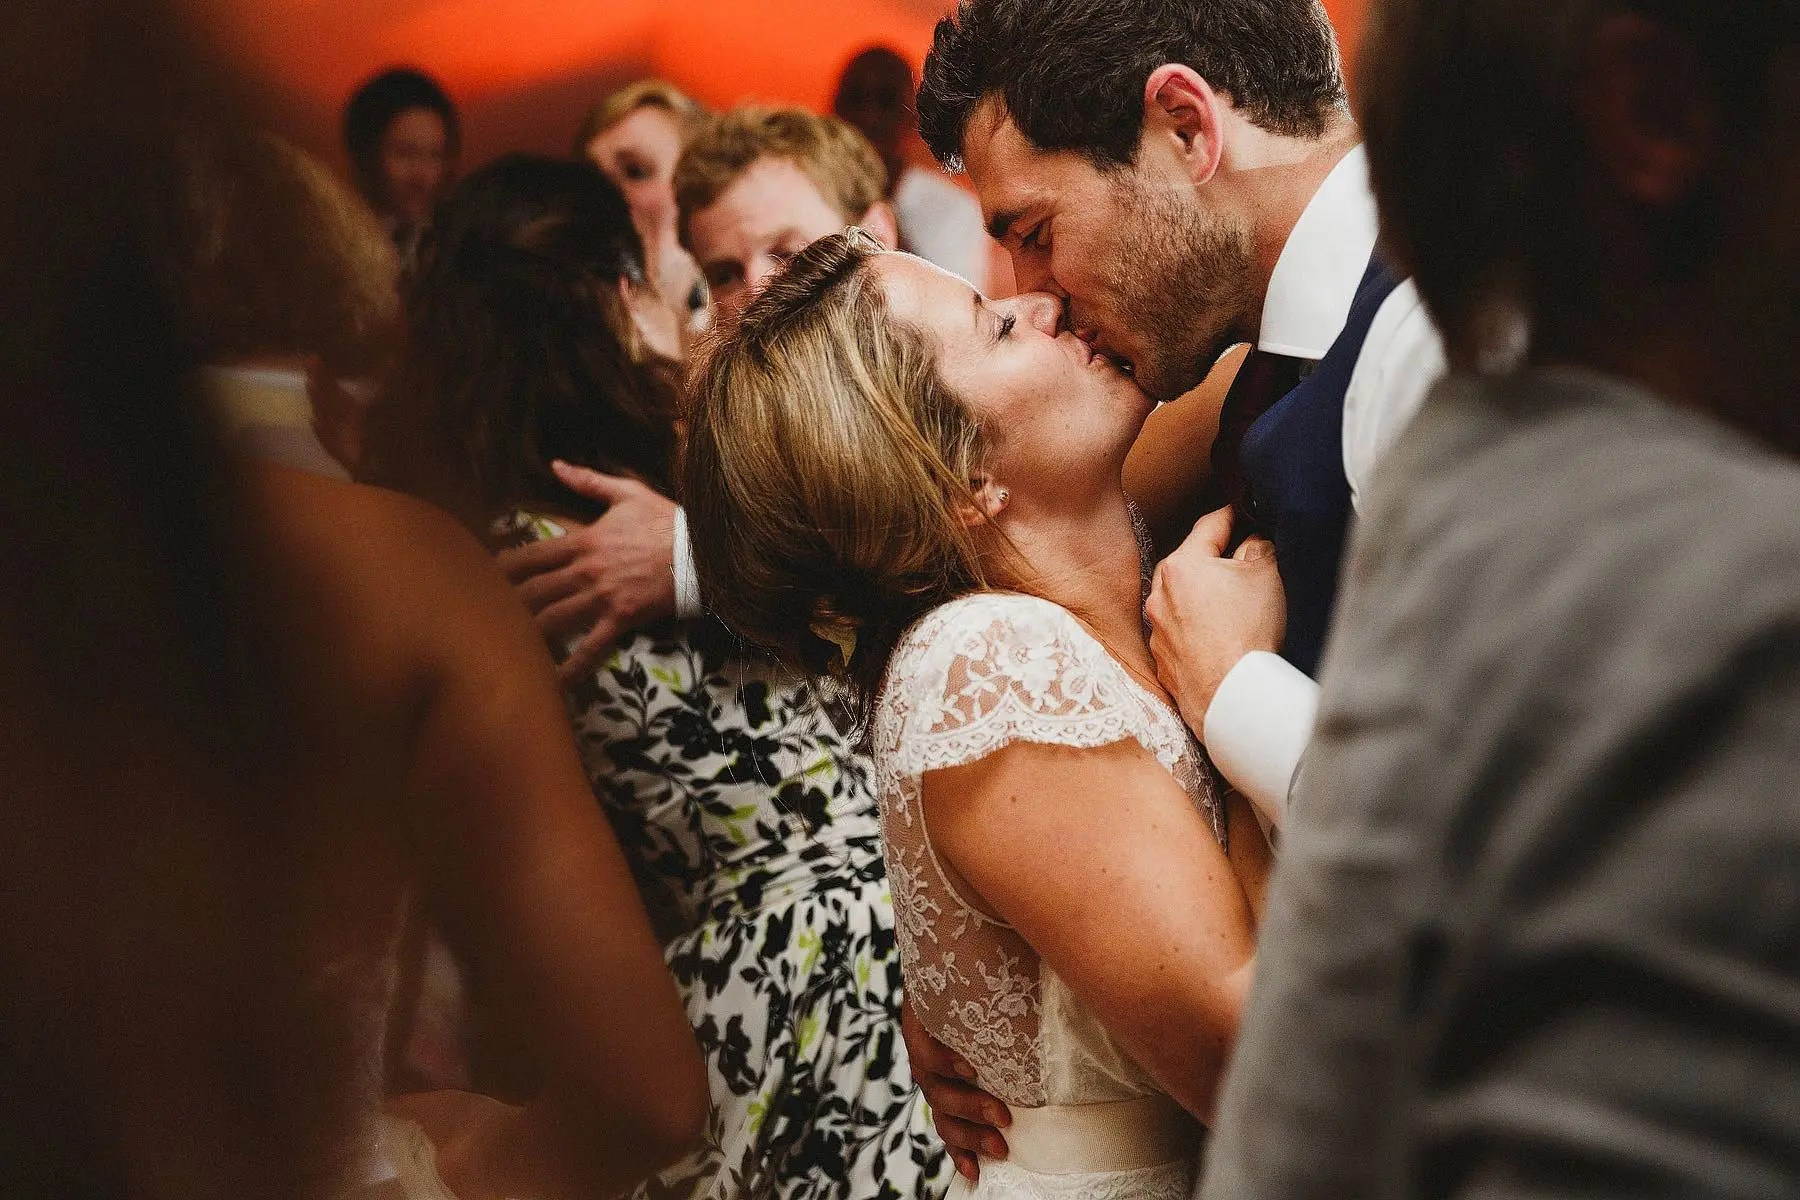 kissing on the dancefloor at a wedding